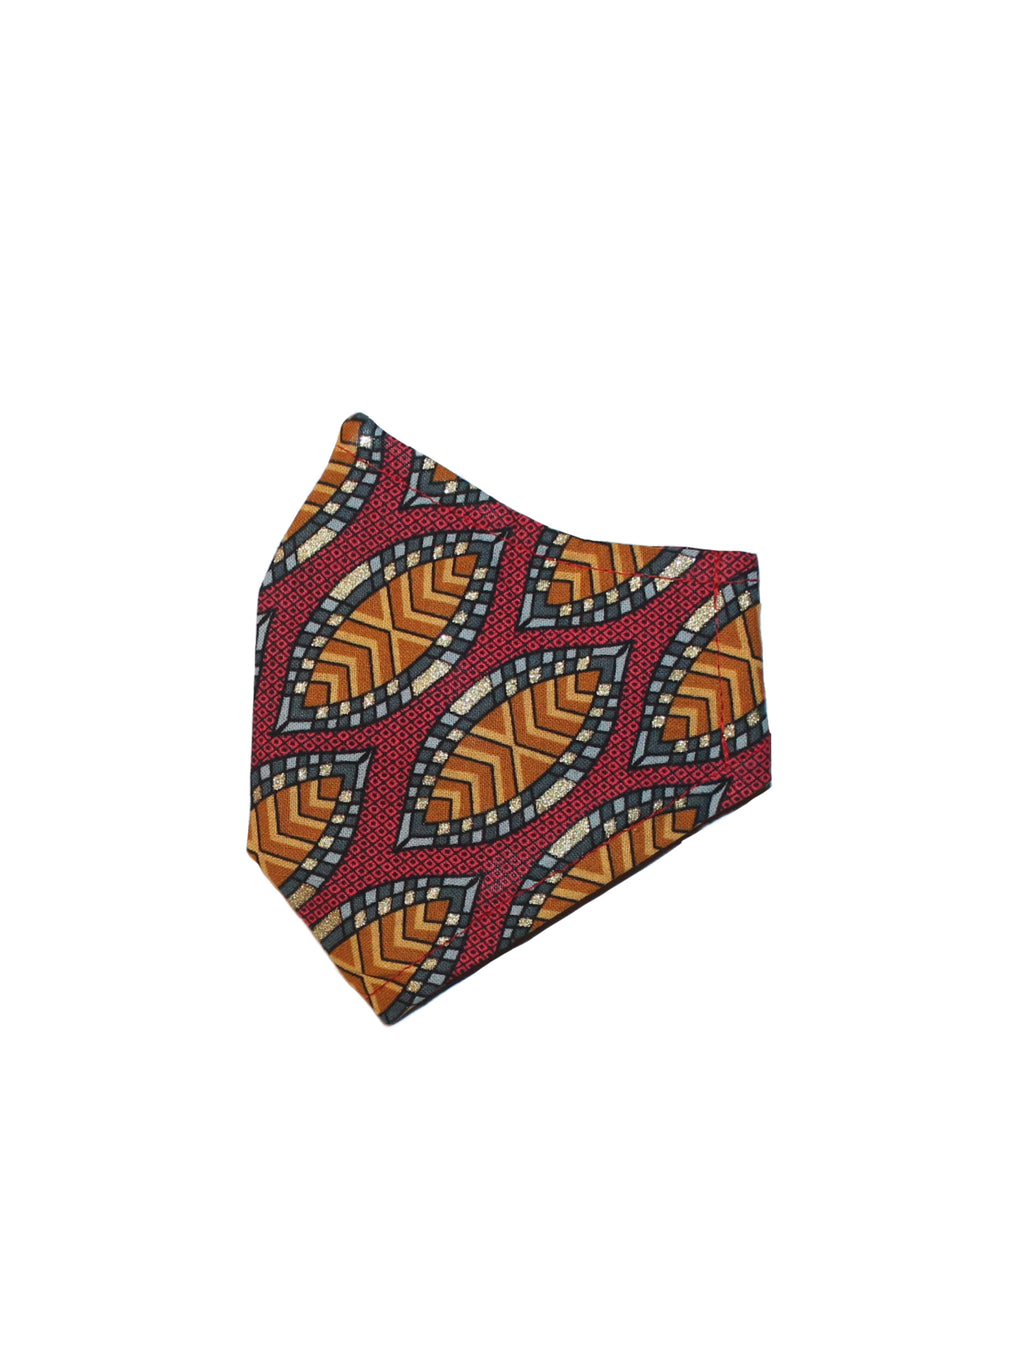 Ankara mask (Limited Edition)8